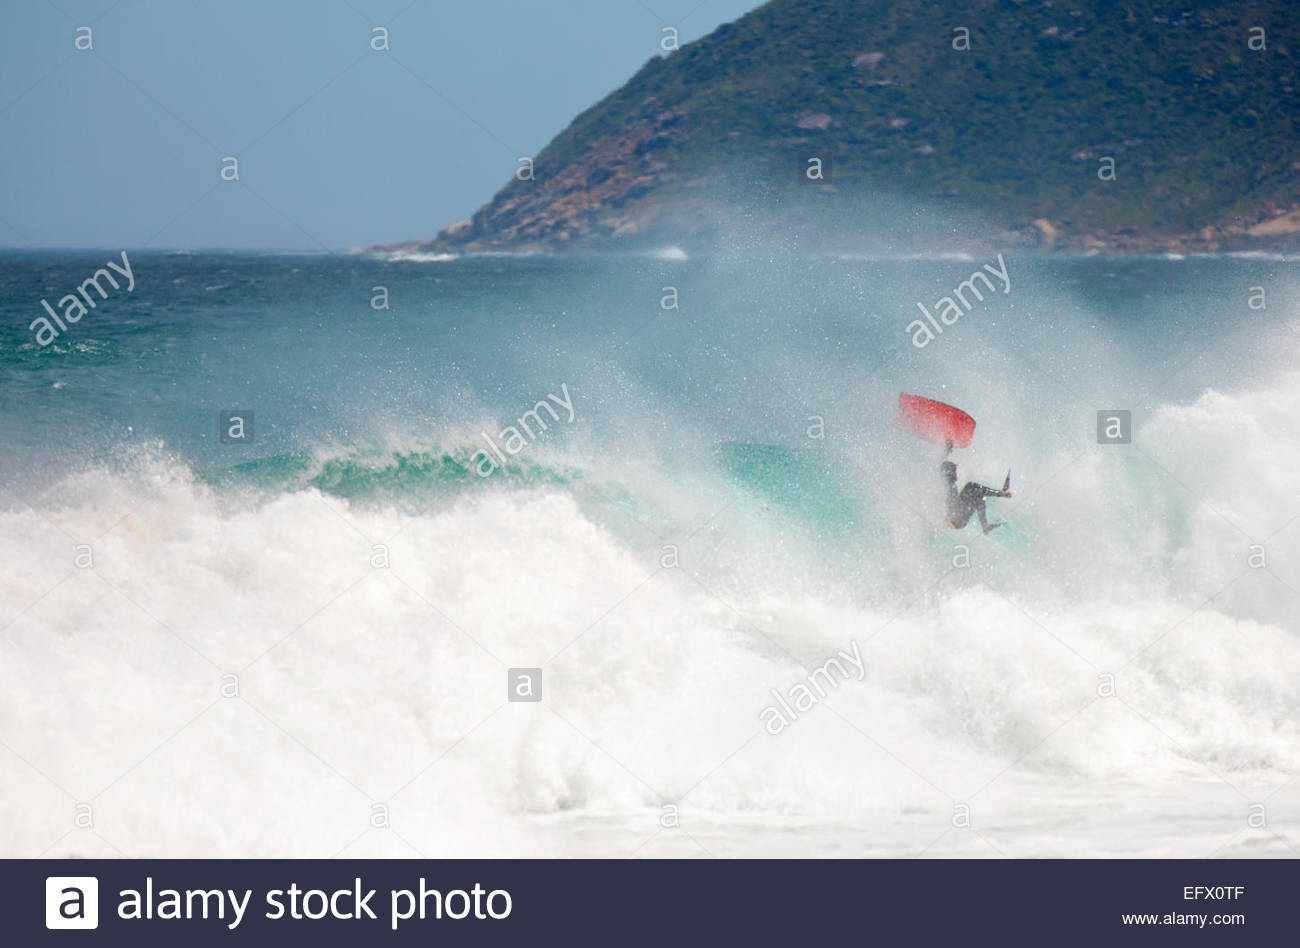 Surfer falling off body board on wave - Stock Image